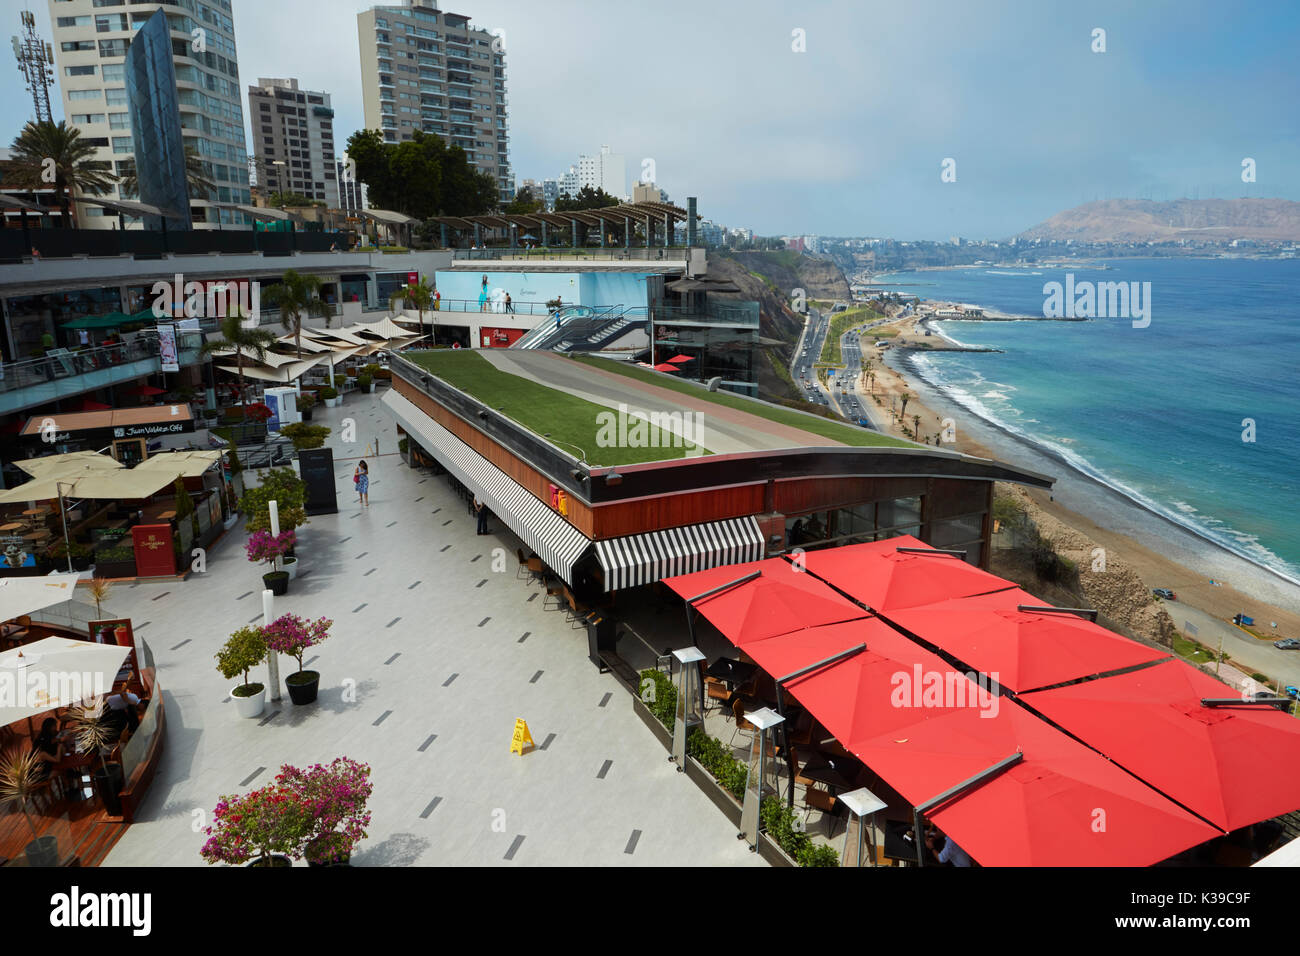 Lacomar cliff-top shopping mall, Miraflores, Lima, Peru, South America - Stock Image